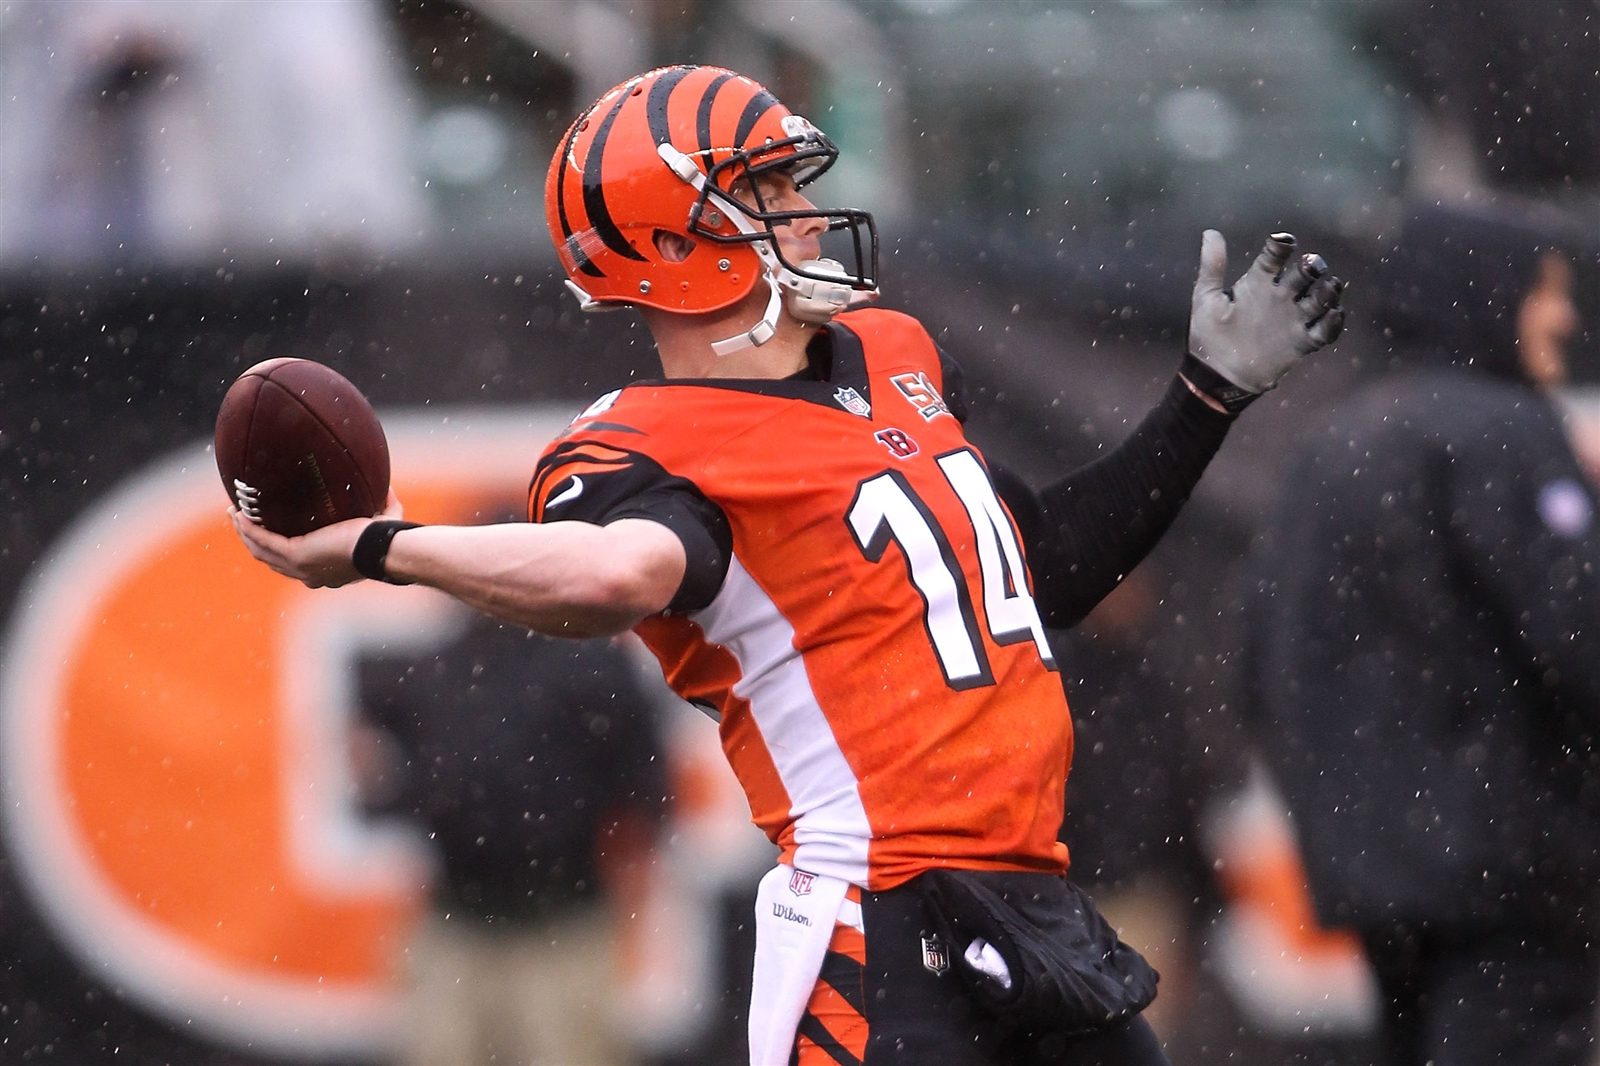 Bengals quarterback Andy Dalton warms up prior to the start of the game against the Buffalo Bills.